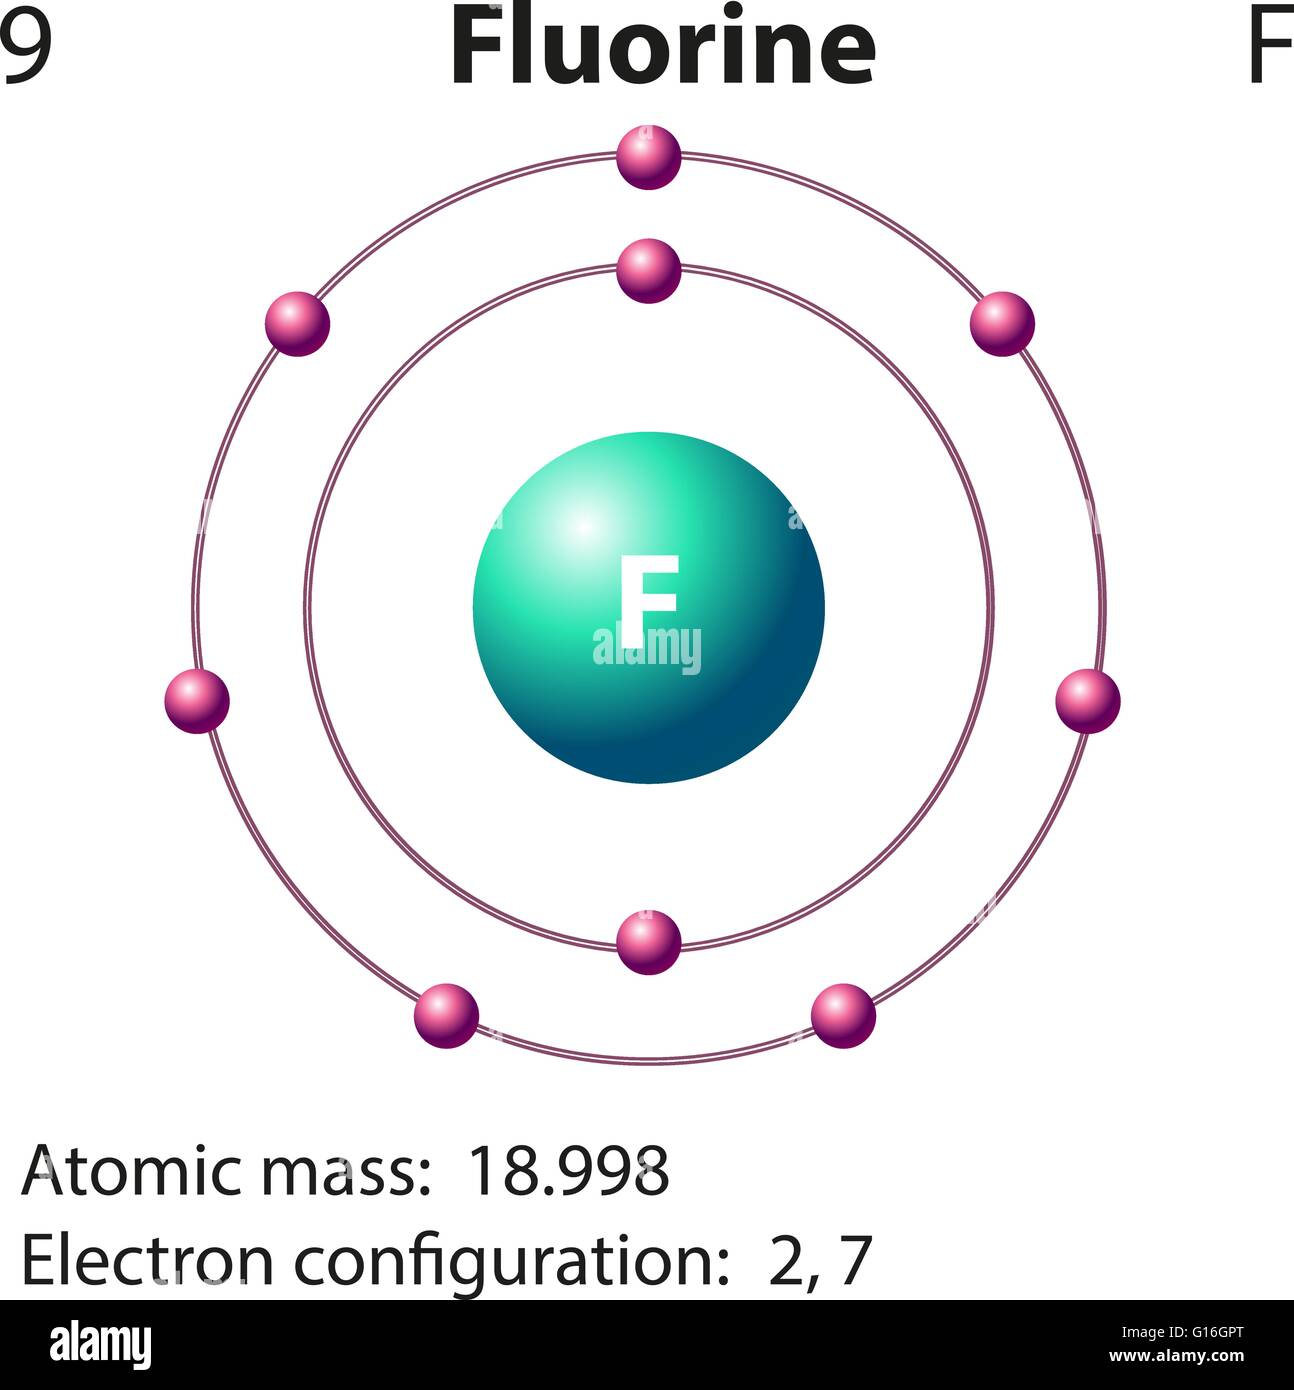 Diagram representation of the element fluorine illustration stock diagram representation of the element fluorine illustration urtaz